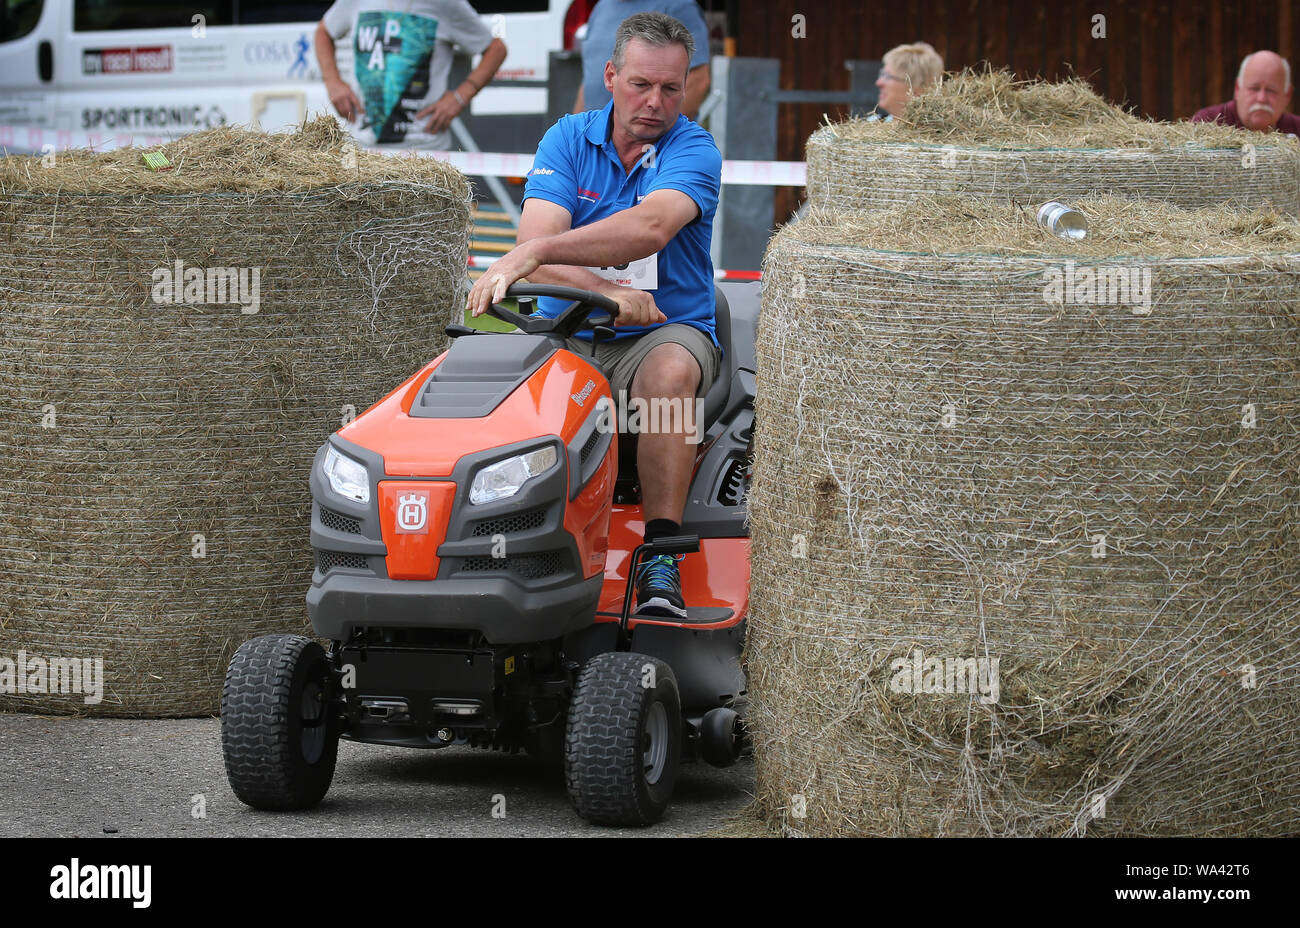 17 August 2019, Bavaria, Rückholz: A participant of the 1st Bavarian Championship in the riding mower obstacle race drives a course through hay bales during the race. In the Allgäu the 1st Bavarian Championship in the ride-on lawn mower obstacle course has begun. On Saturday (17.08.2019) more than 70 participants started in good weather until the afternoon. Photo: Karl-Josef Hildenbrand/dpa Stock Photo